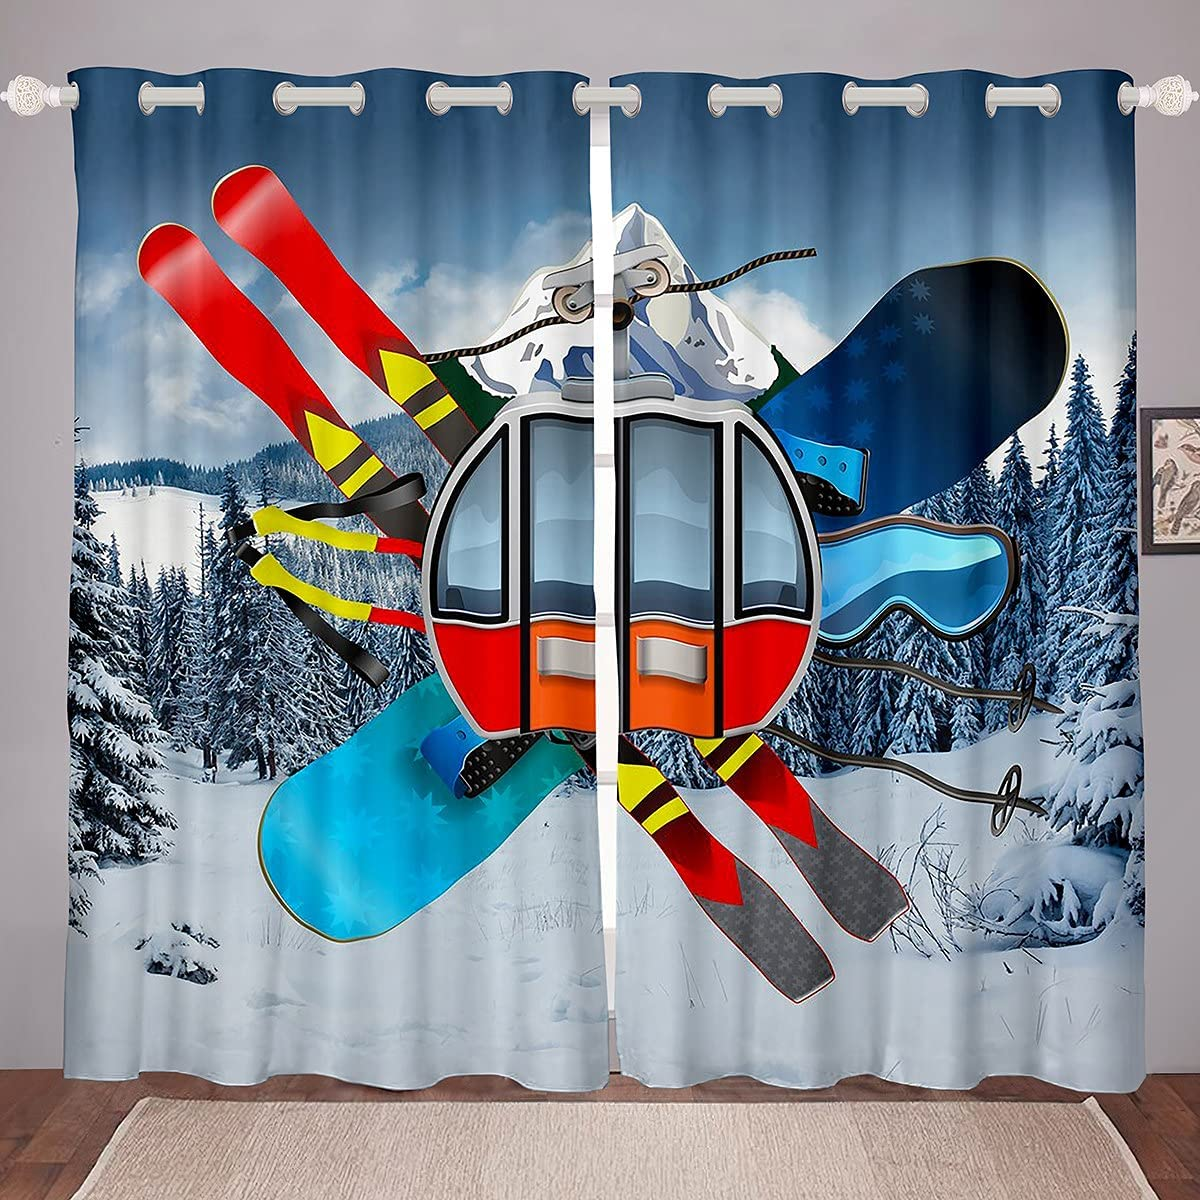 Erosebridal Skiing Curtains Extreme Window Sale Special Price Latest item Sports Games